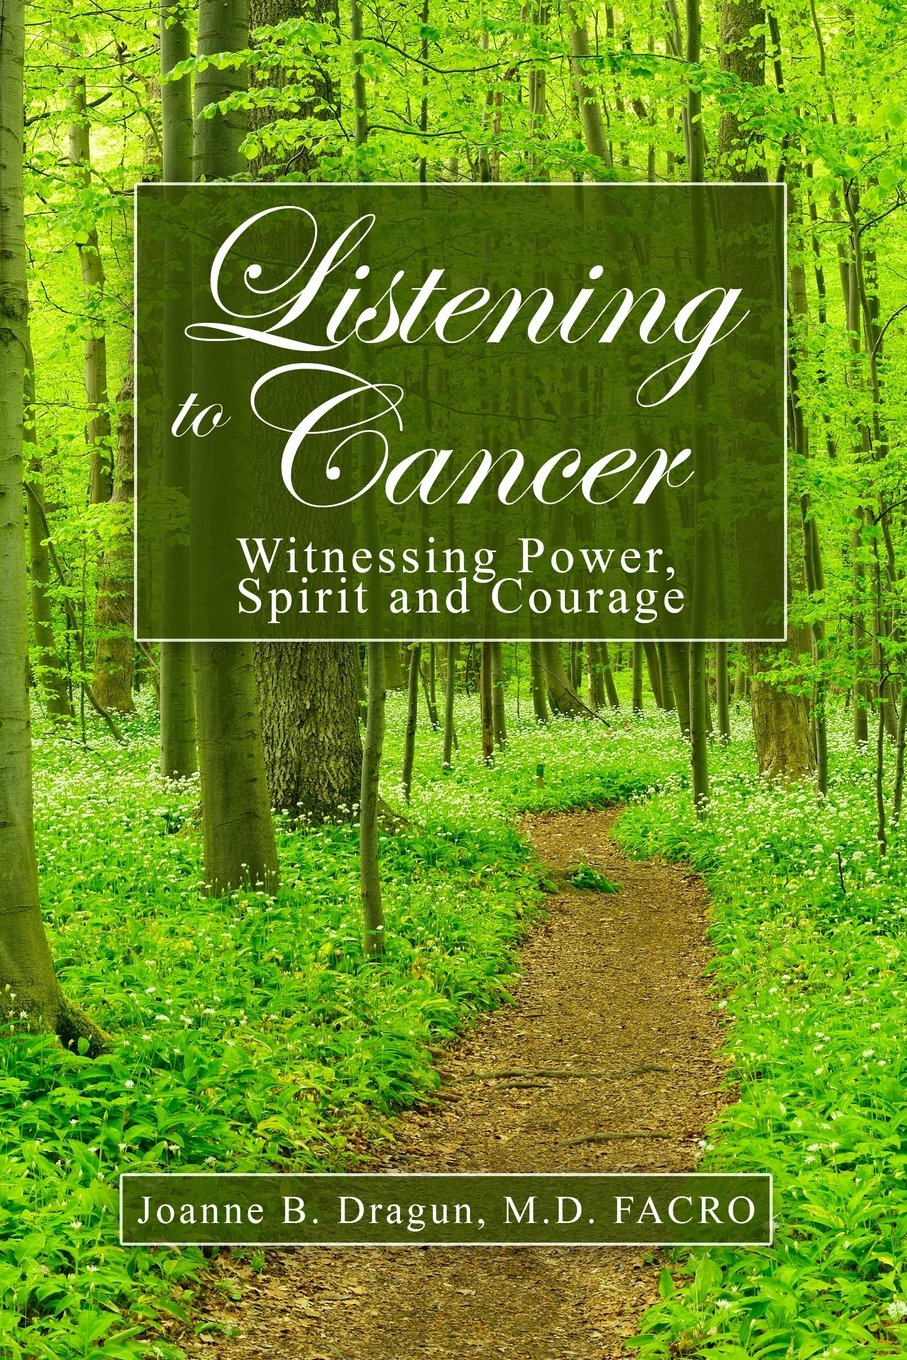 Listening to Cancer: Witnessing Power, Spirit and Courage pdf epub